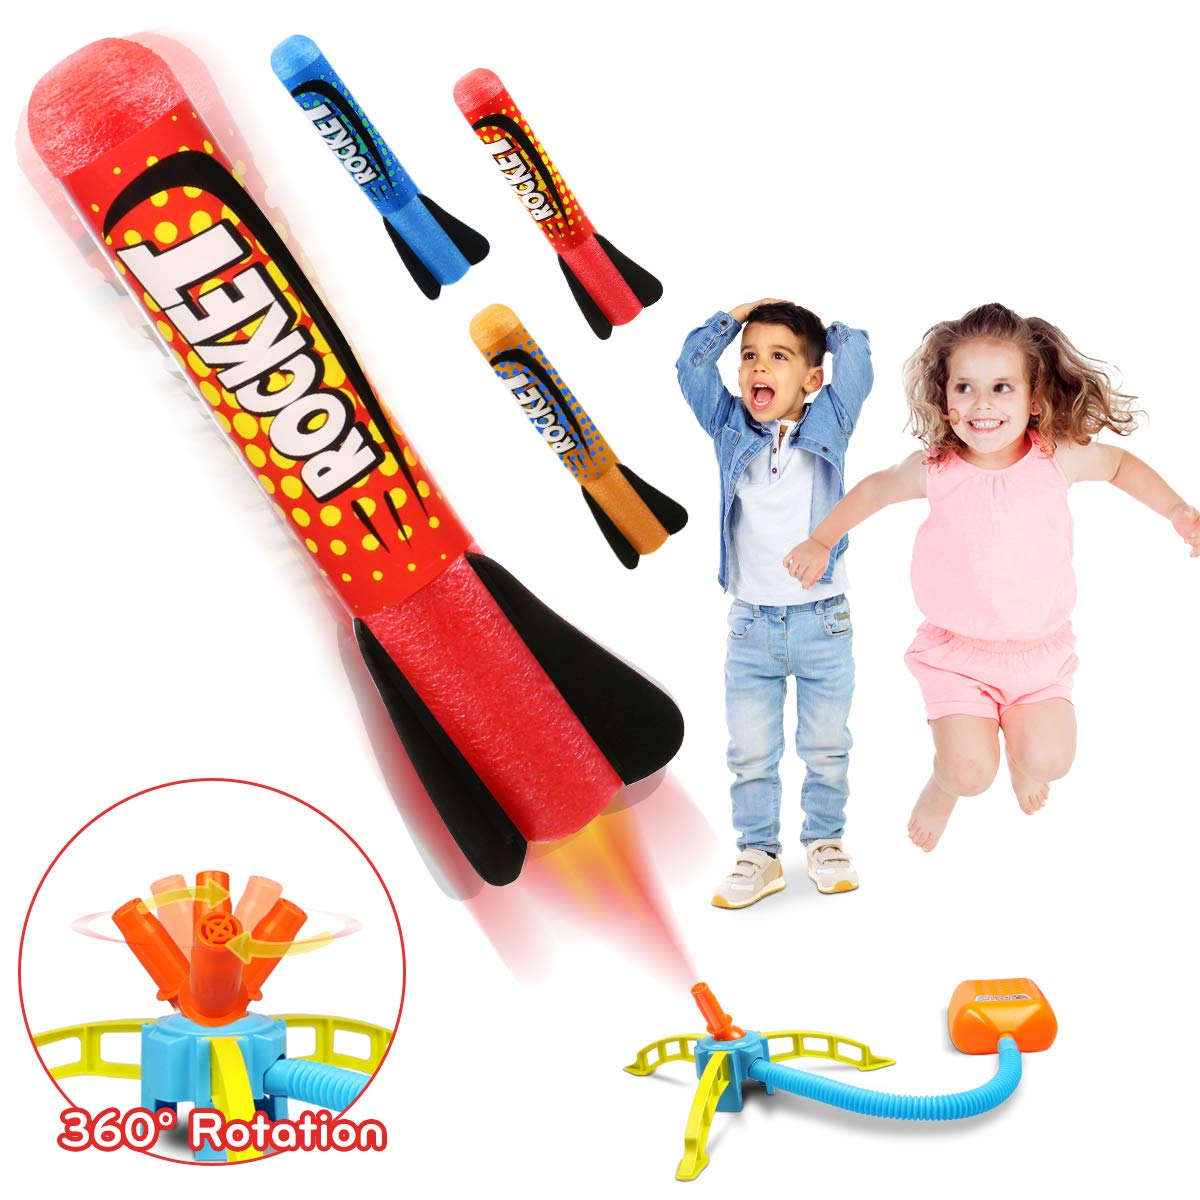 Duckura Jump Rocket Launchers for Kids, Outdoor Play with 3 Rockets, Summer Activities Games Sport Toys Gifts for Boys Girls Toddlers Age 3 4 5 6 and Up